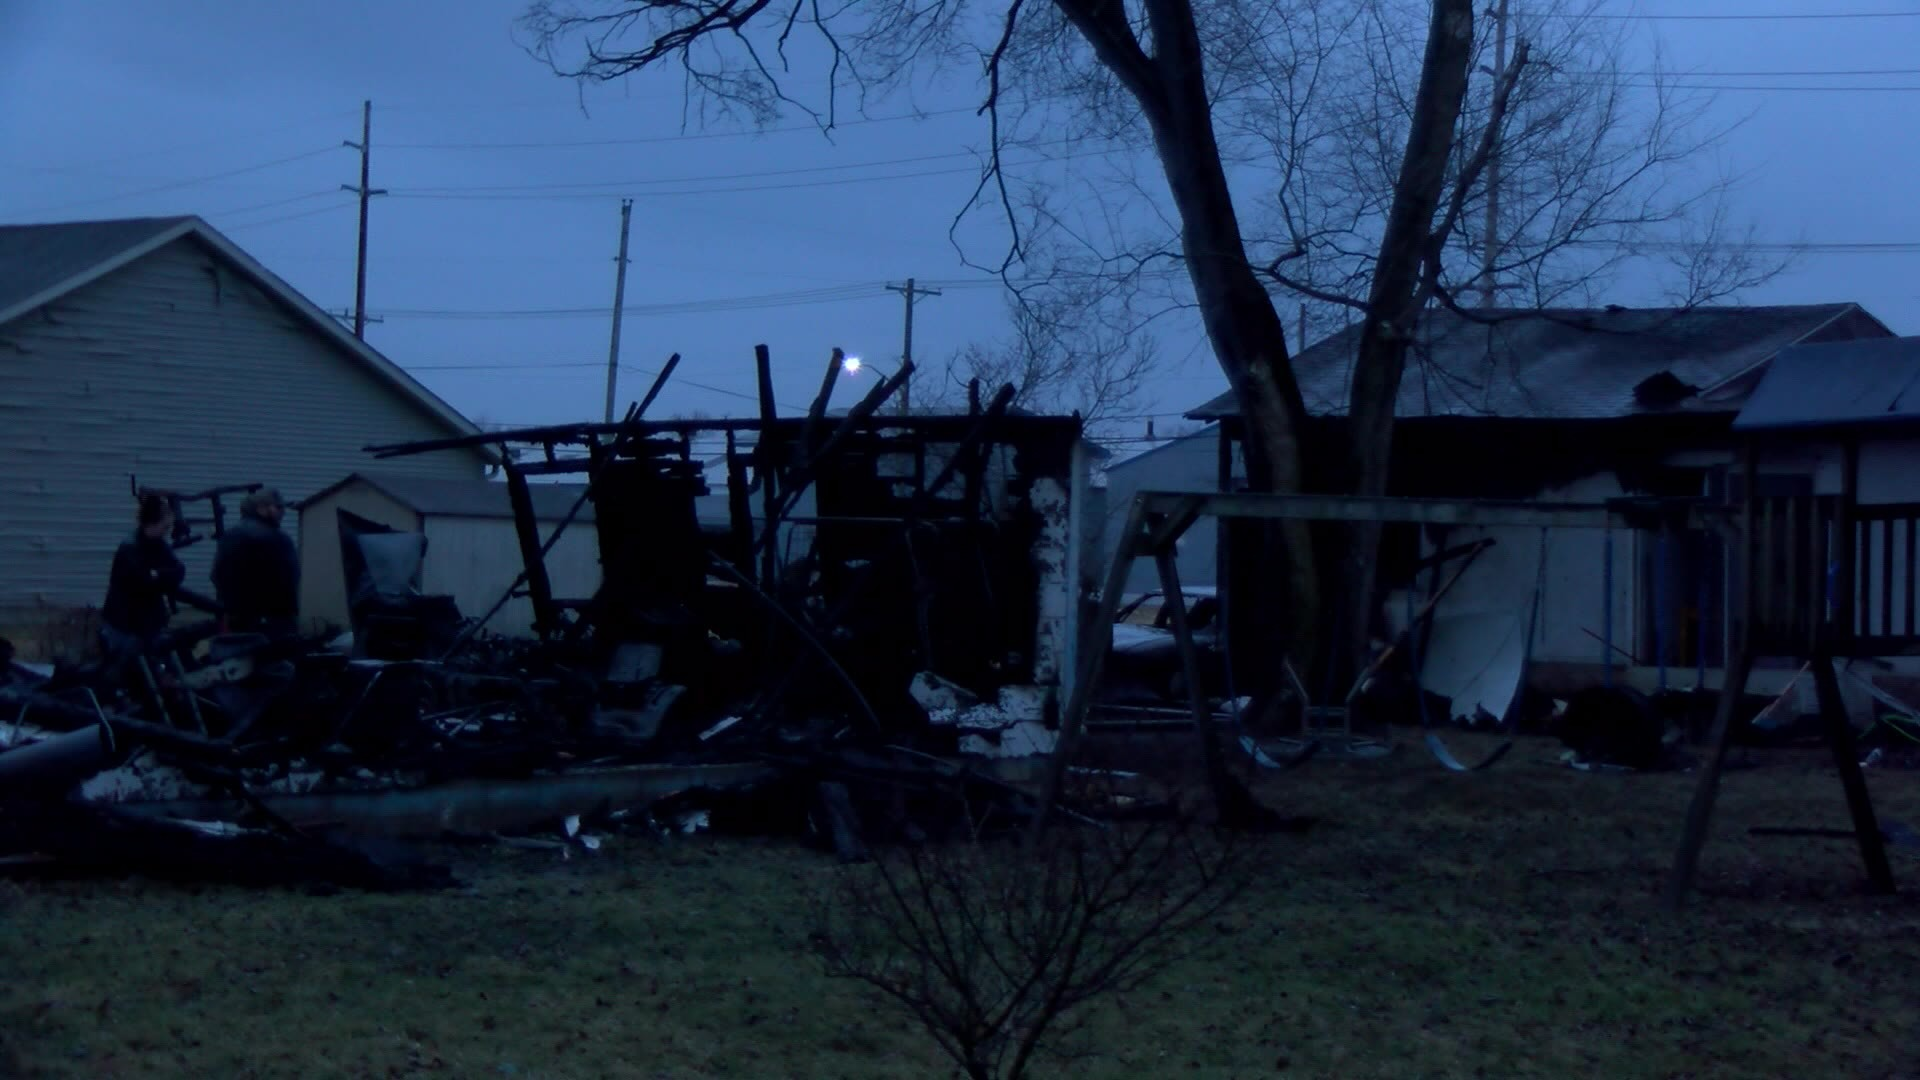 5 buildings, 6 cars destroyed in fire in Delphi, Indiana